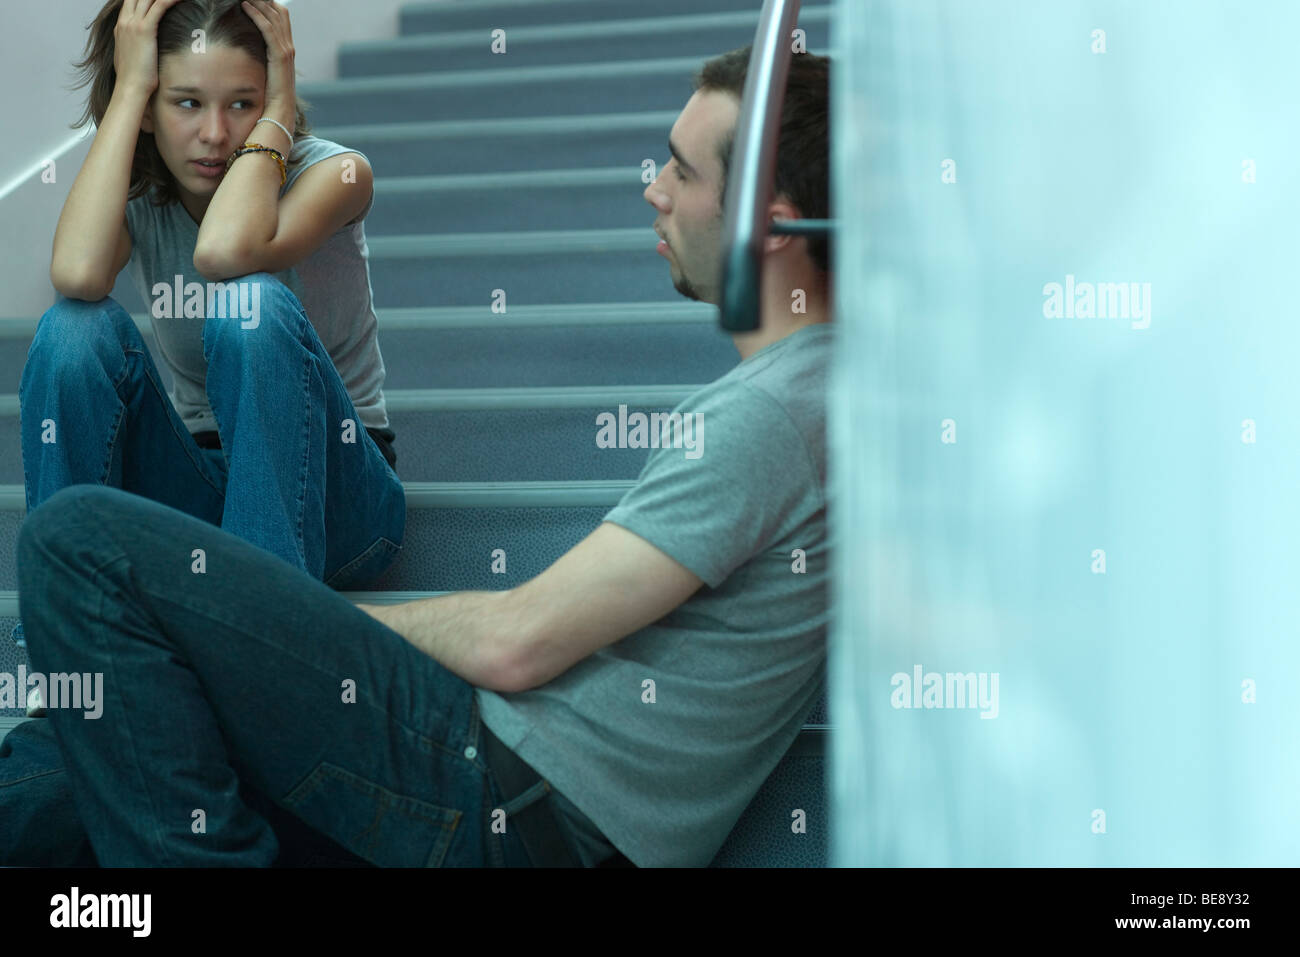 Young couple sitting on stairs, avoir une conversation tendue Photo Stock